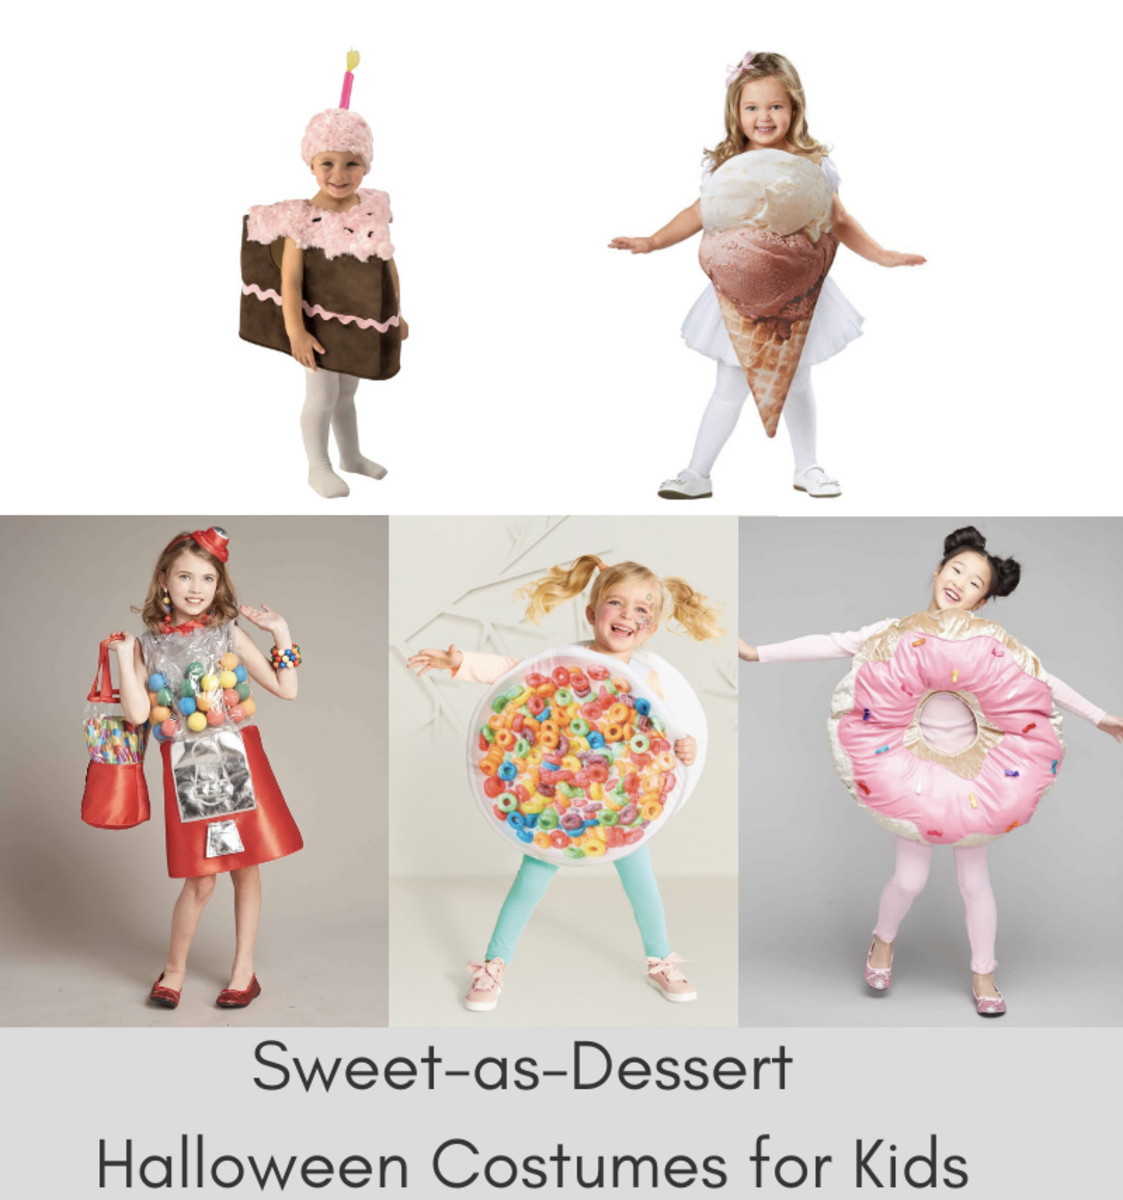 Sweet-as-Dessert Halloween Costumes for Kids